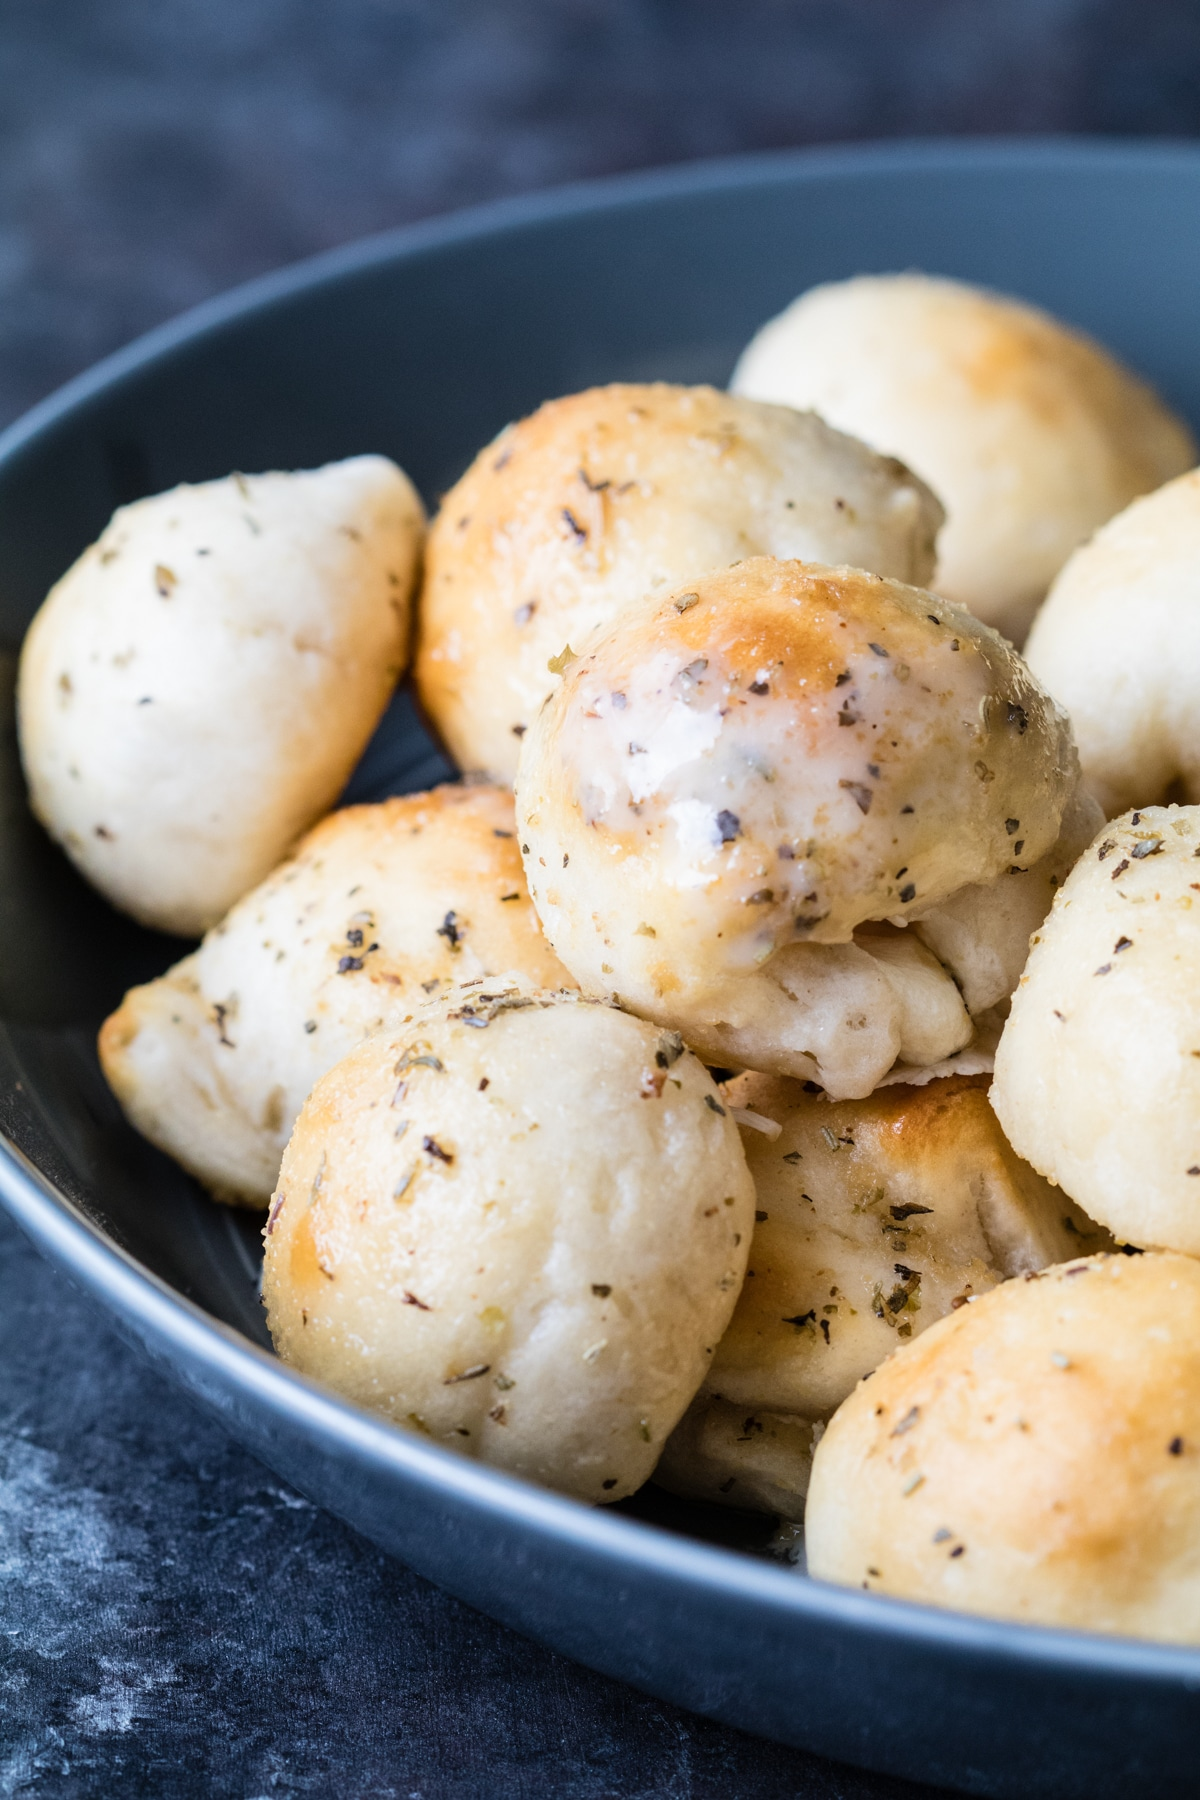 Have you ever had a garlic herb cheese bomb? Add it to your list of appetizers to make! |krollskorner.com